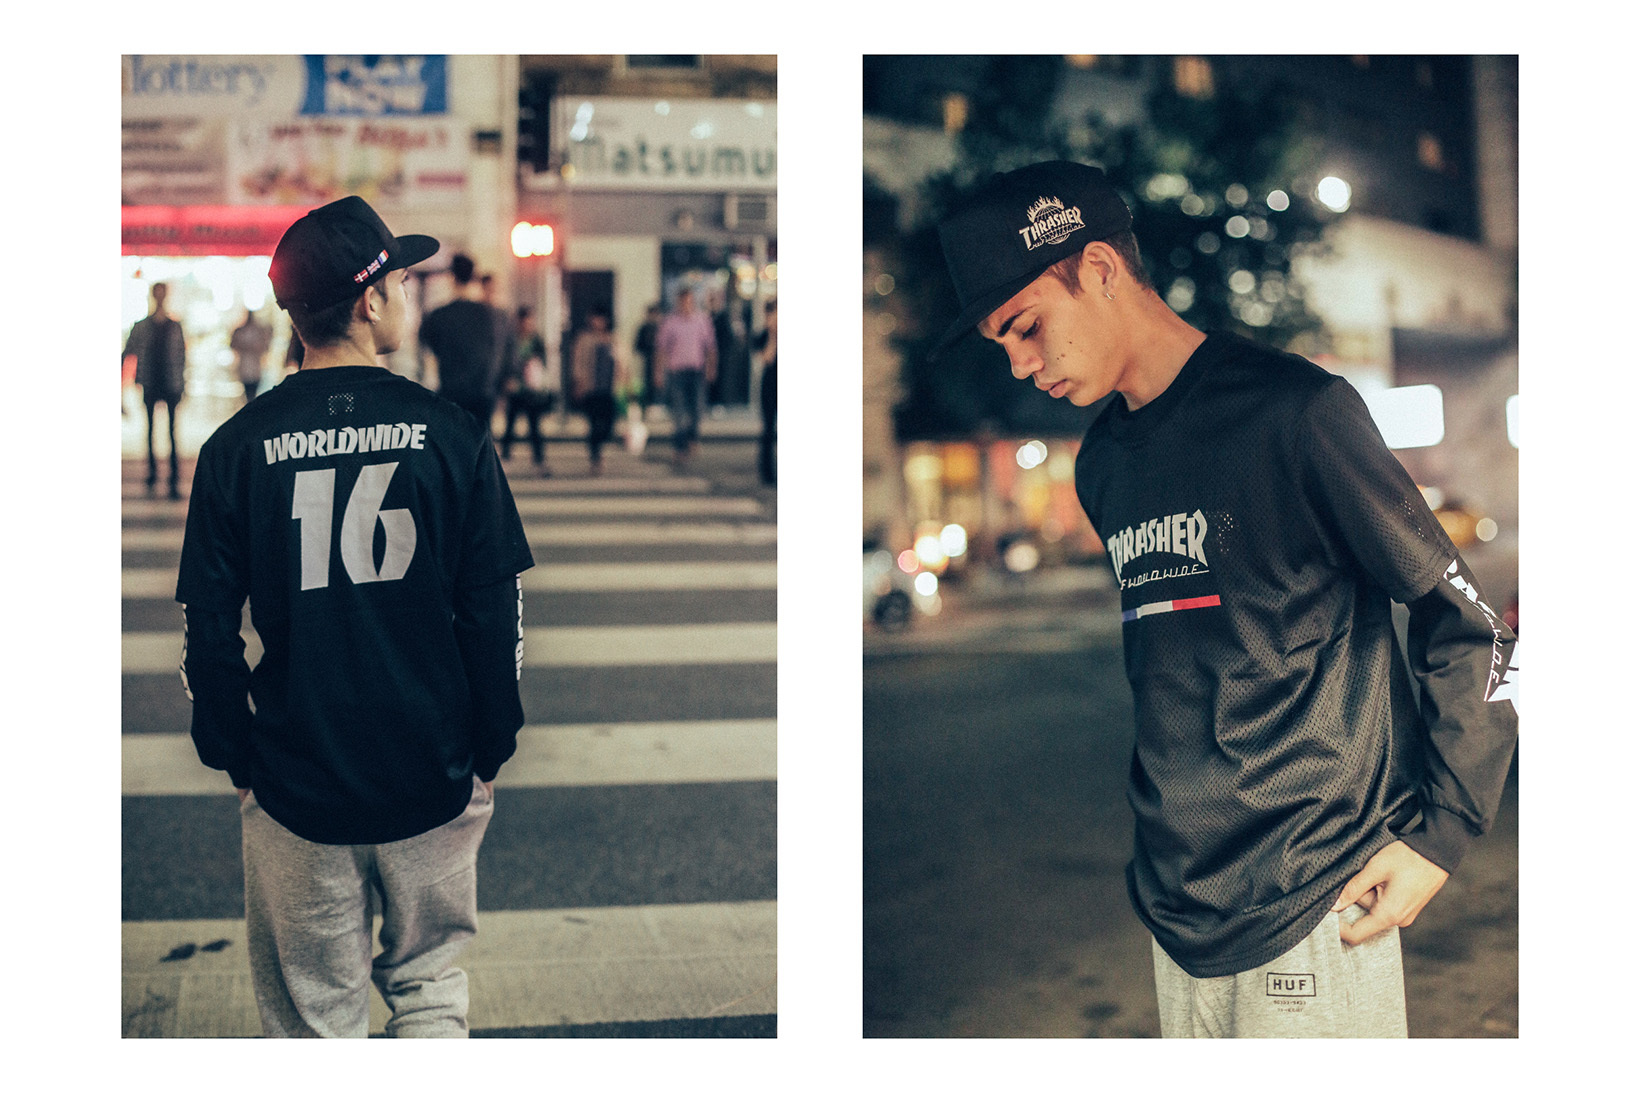 Huf x Thrasher - TRENDS periodical